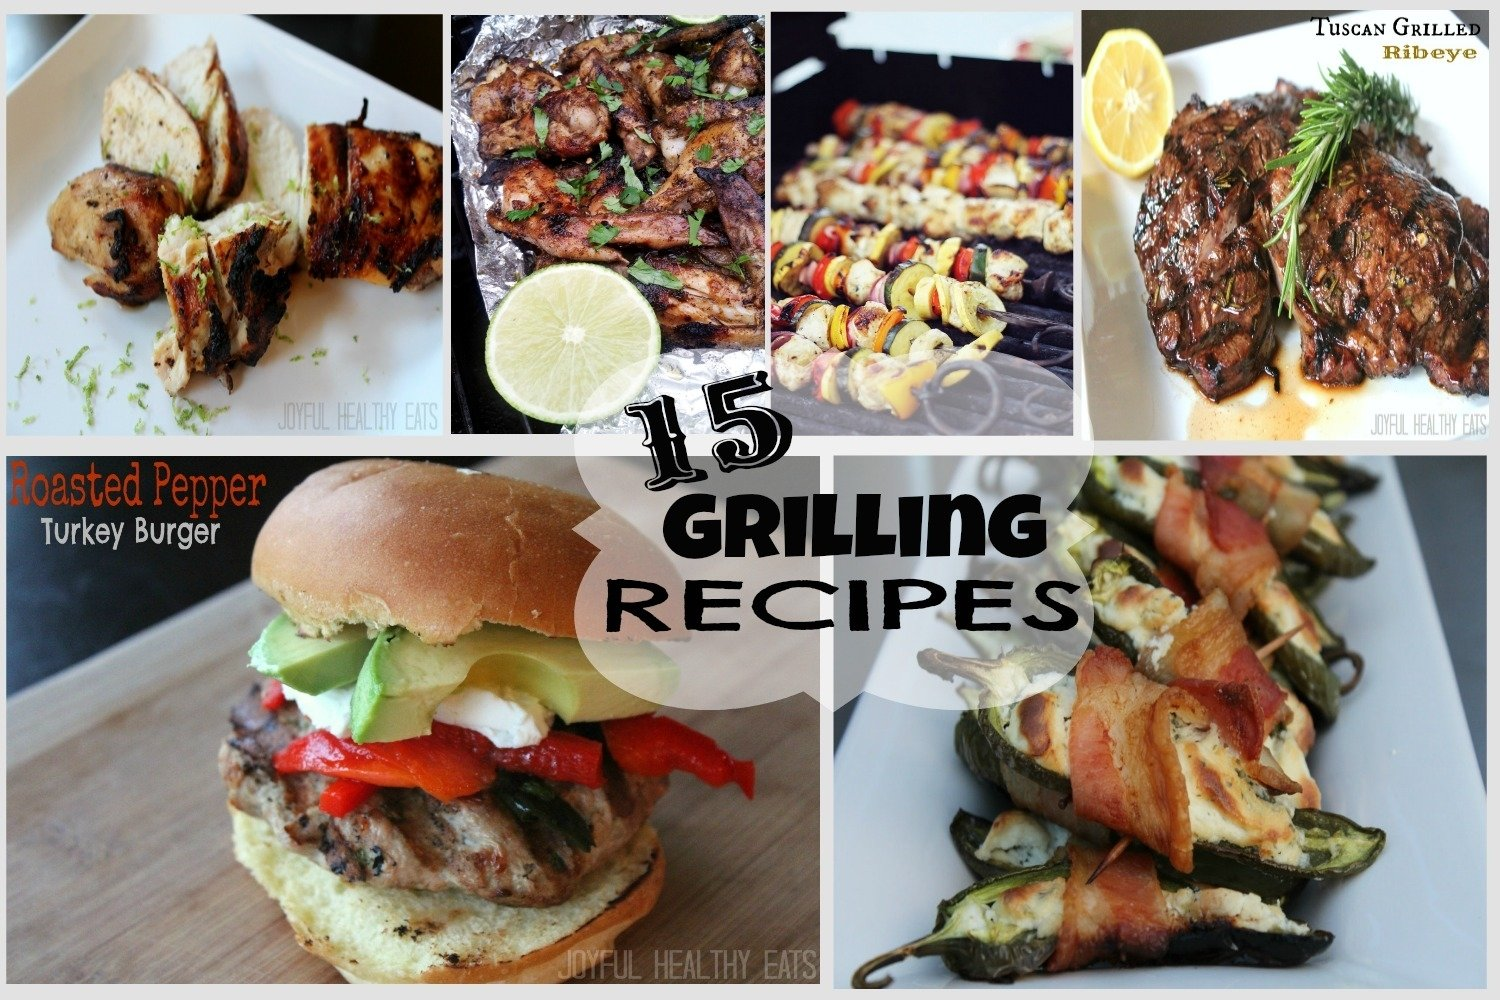 10 Lovely 4Th Of July Meal Ideas 4th of july grilling recipes roundup easy healthy recipes using 3